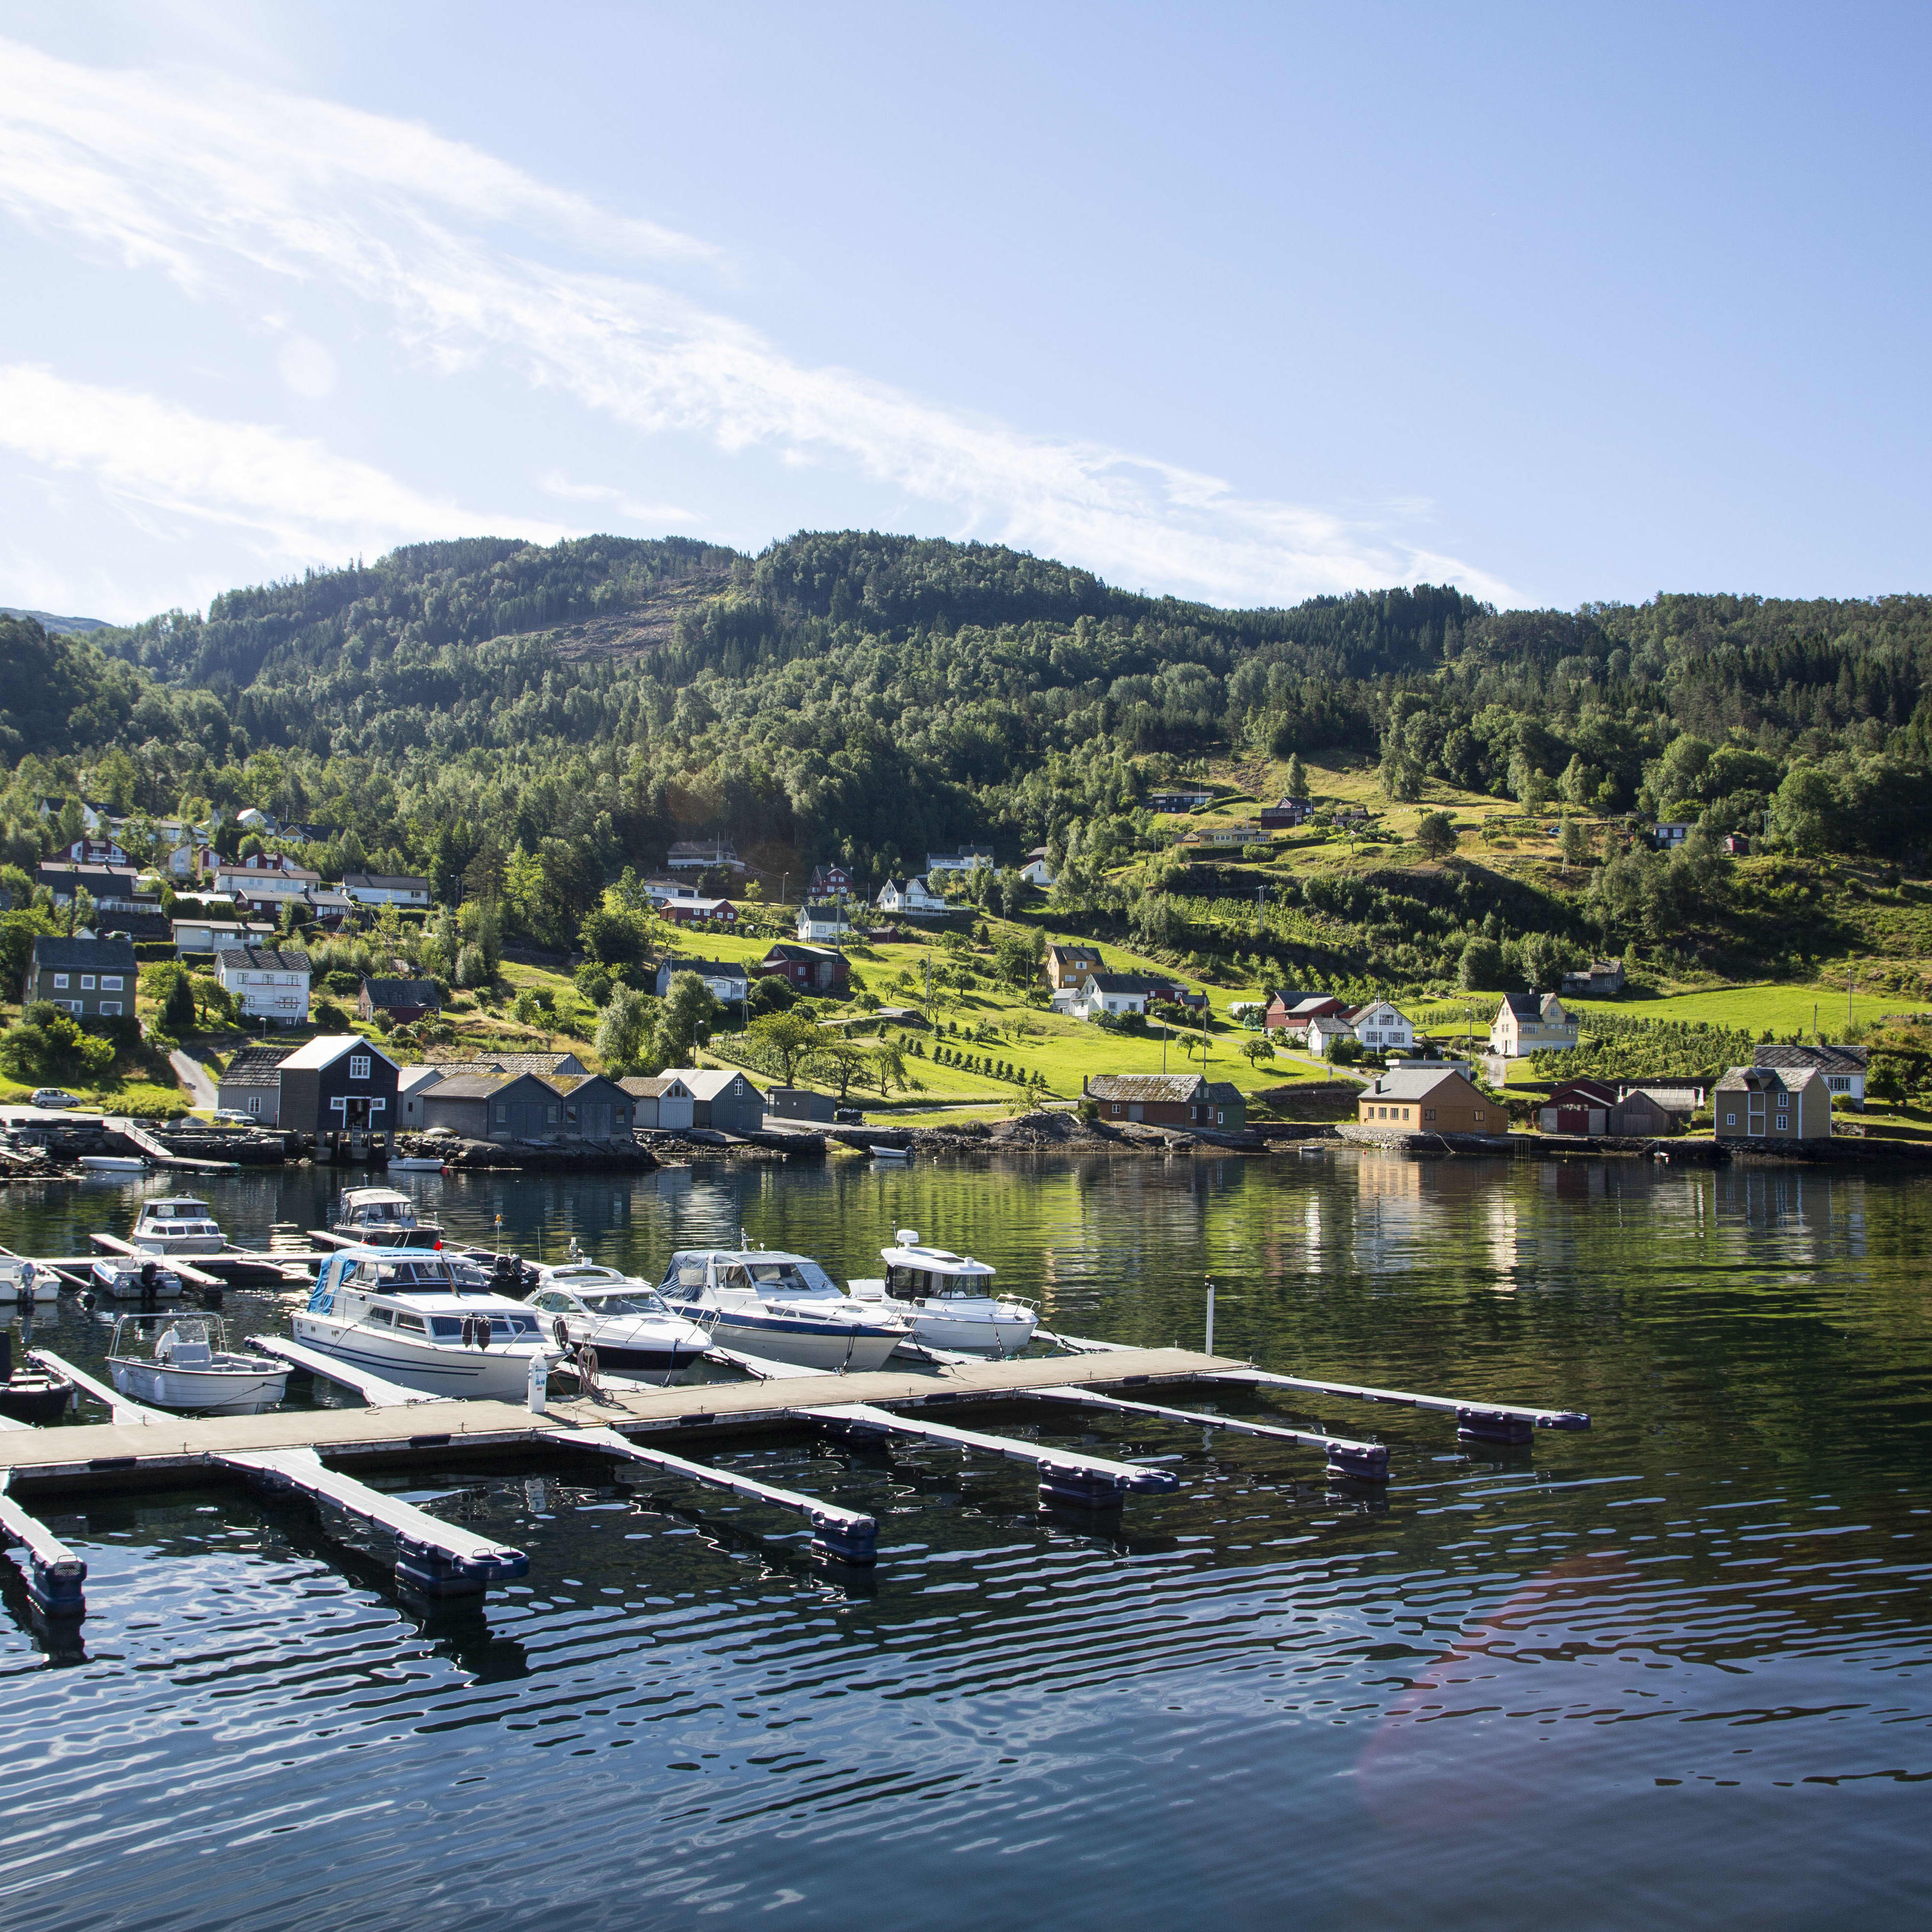 A view of the small town of Herand located in Hardanger from the boat deck sailing into to the port. The view covers a small boat harbour as well as green hills with wooden houses.